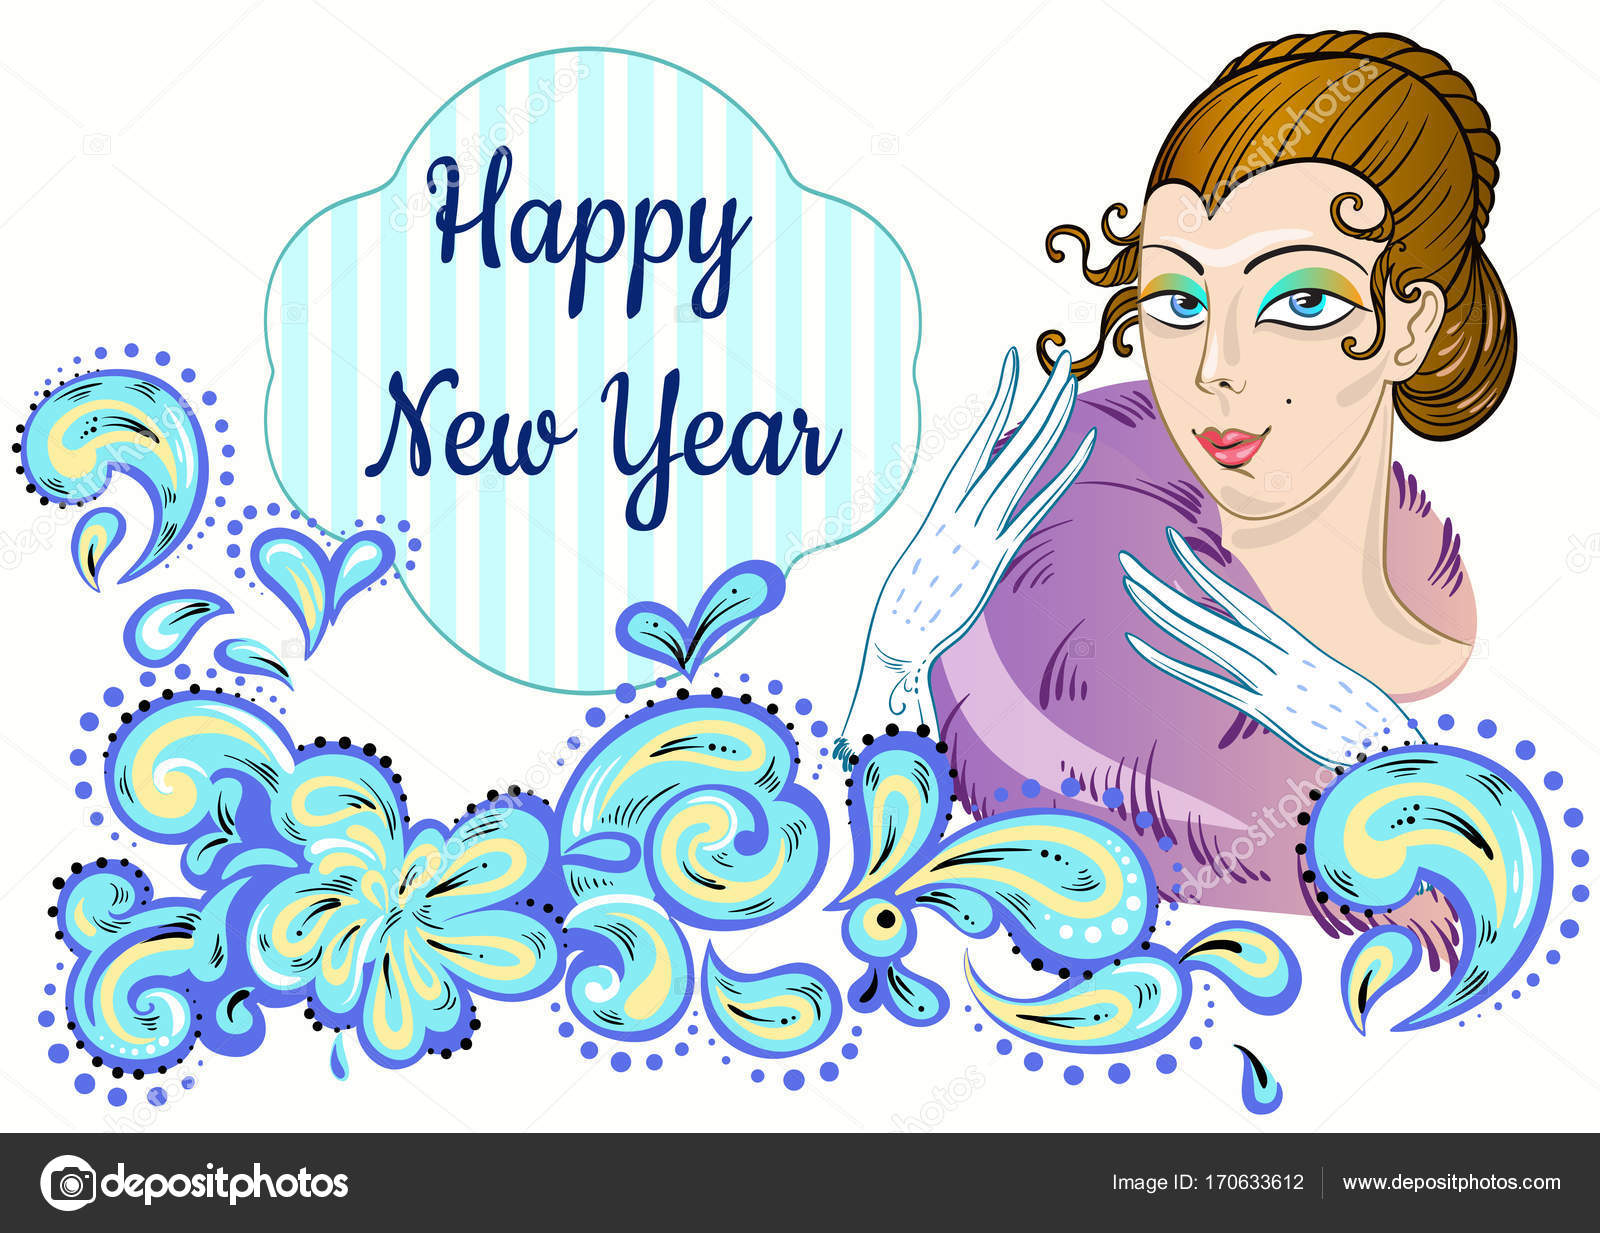 vintage style new year invitation design with beautiful lady and decorative ornament around fairy festive